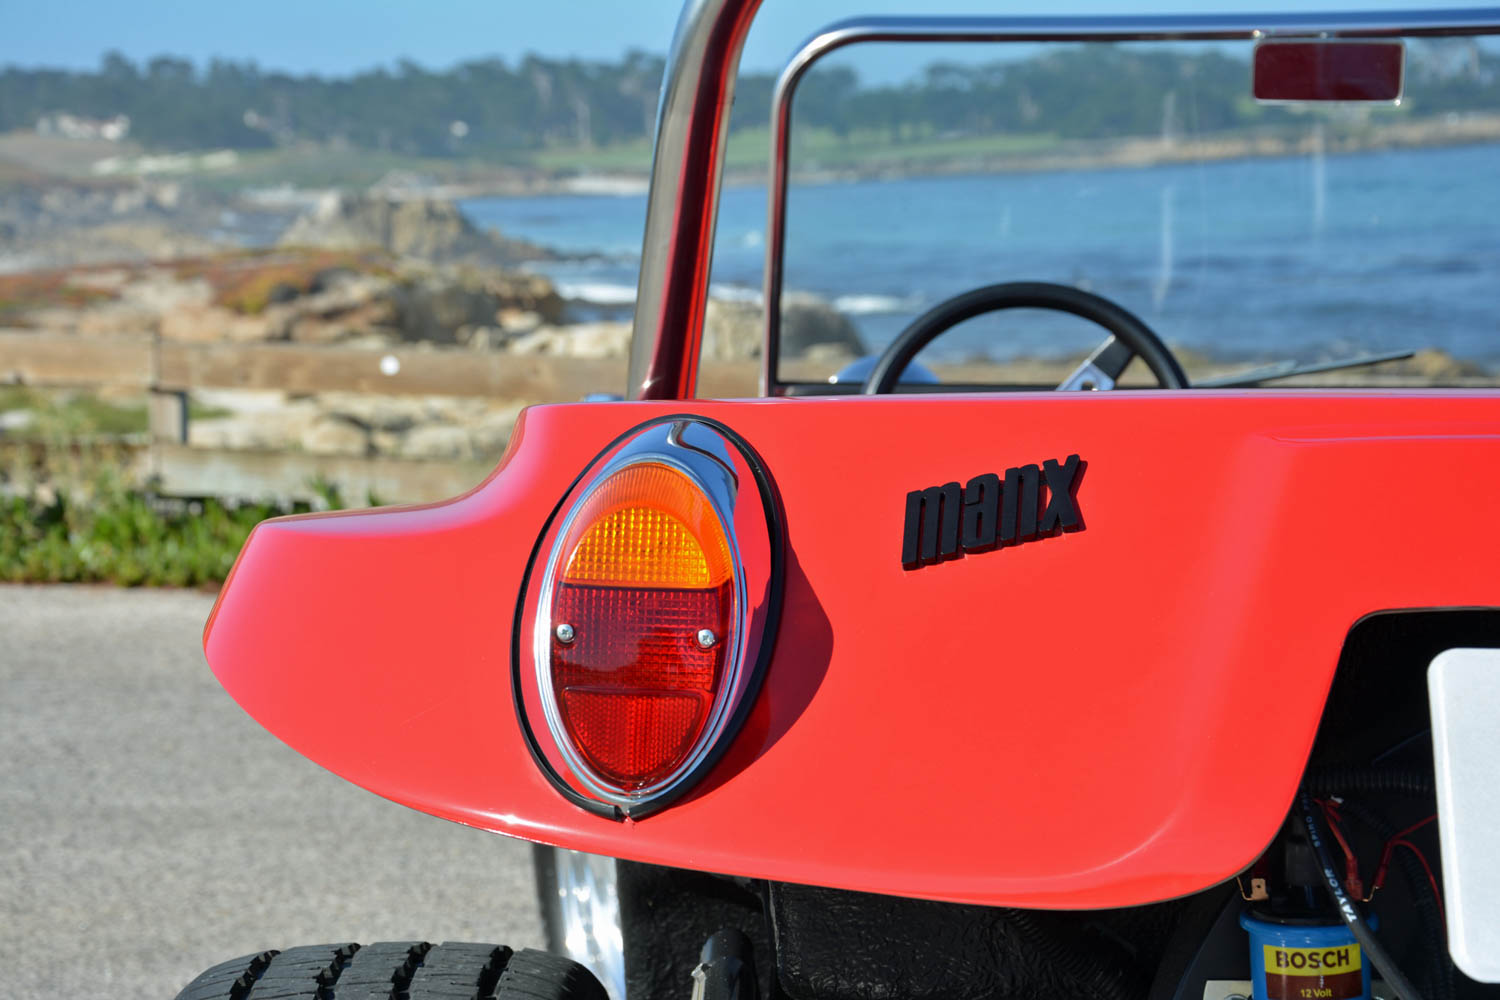 1971 Meyers Manx badge